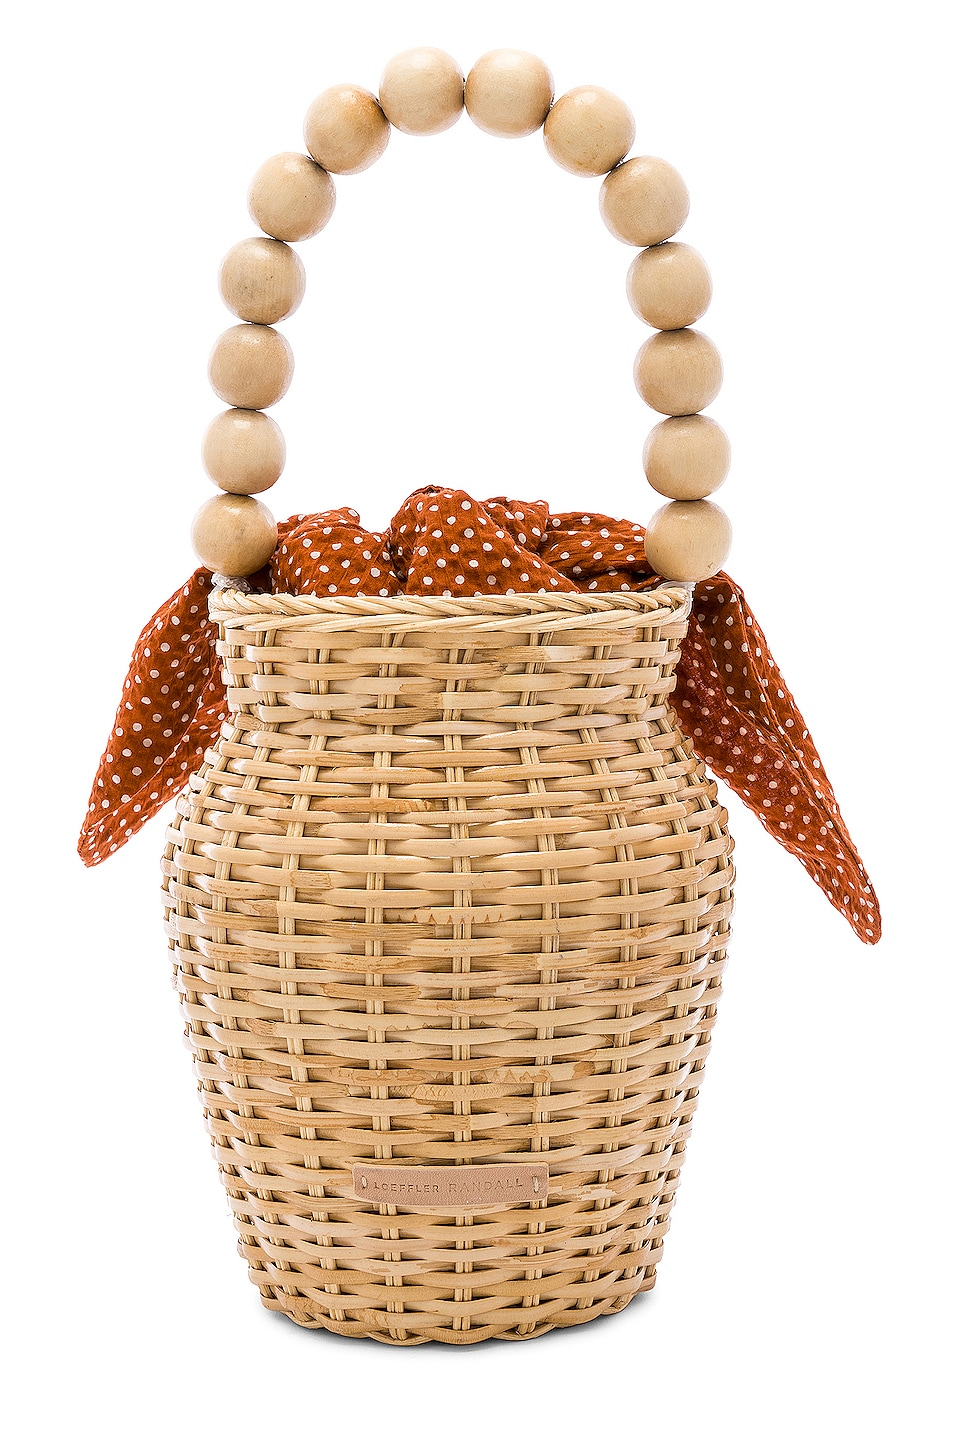 Loeffler Randall Wicker Tote in Blonde & Penny